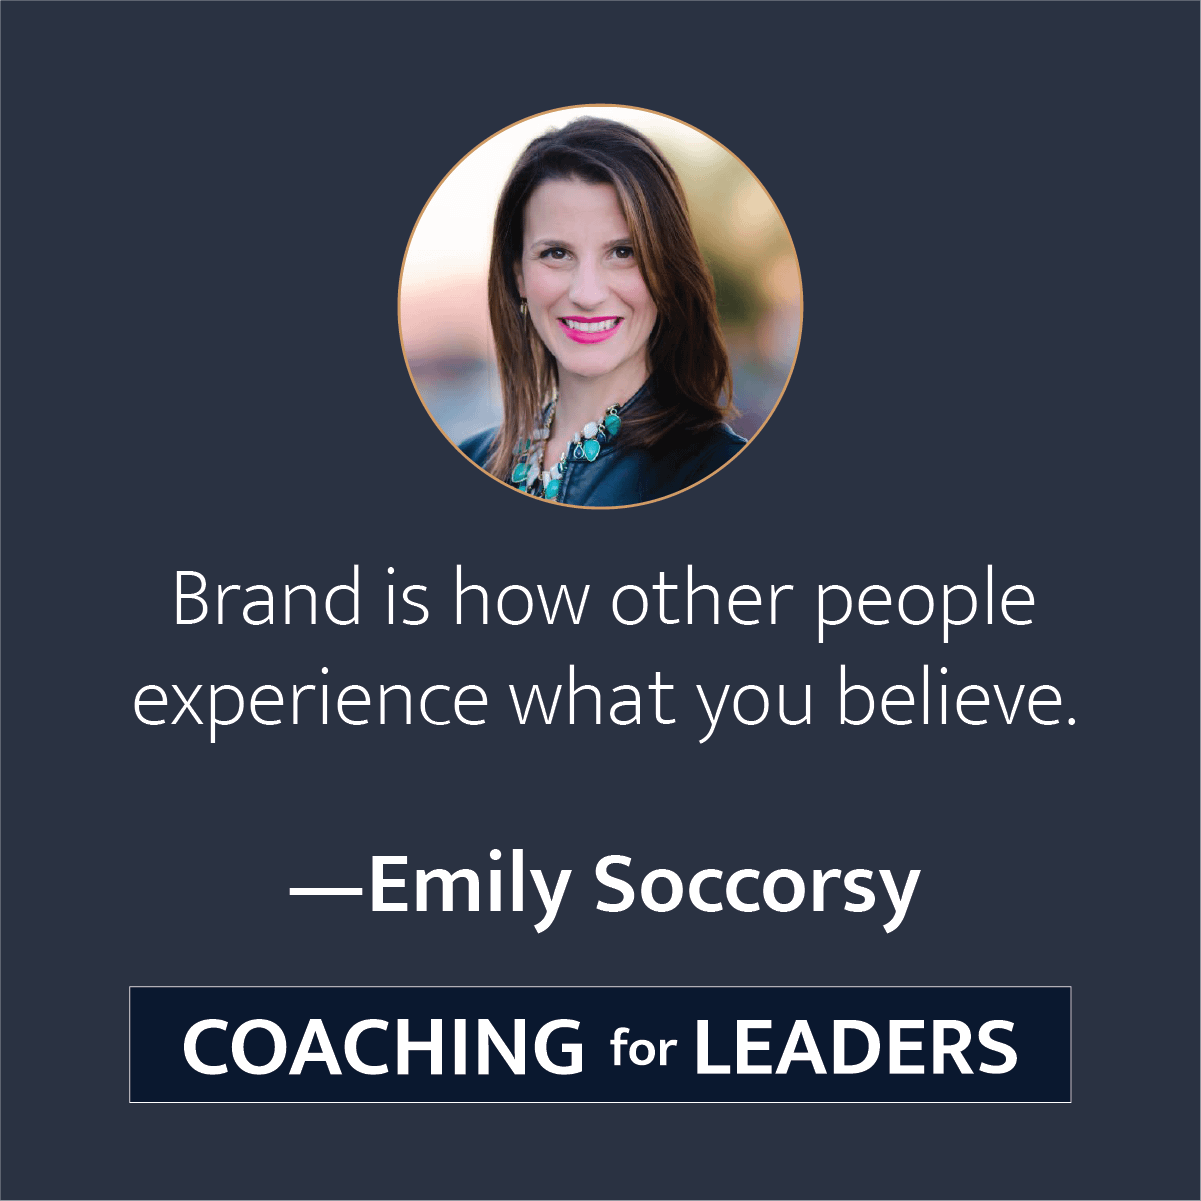 Brand is how other people experience what you believe.